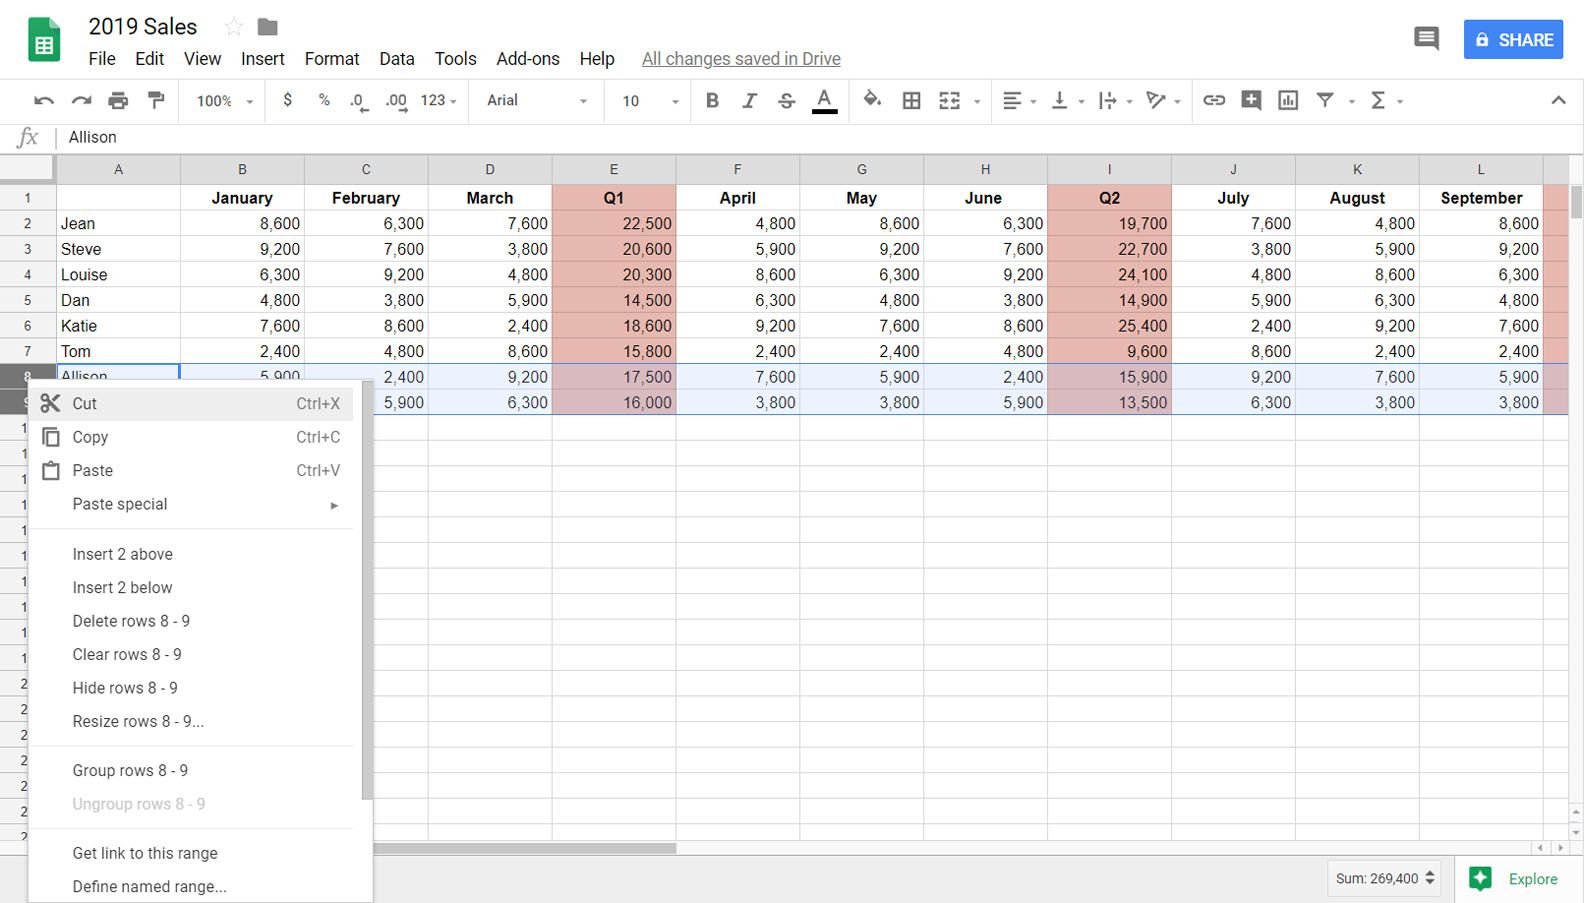 How to Hide or Unhide Rows in Google Sheets